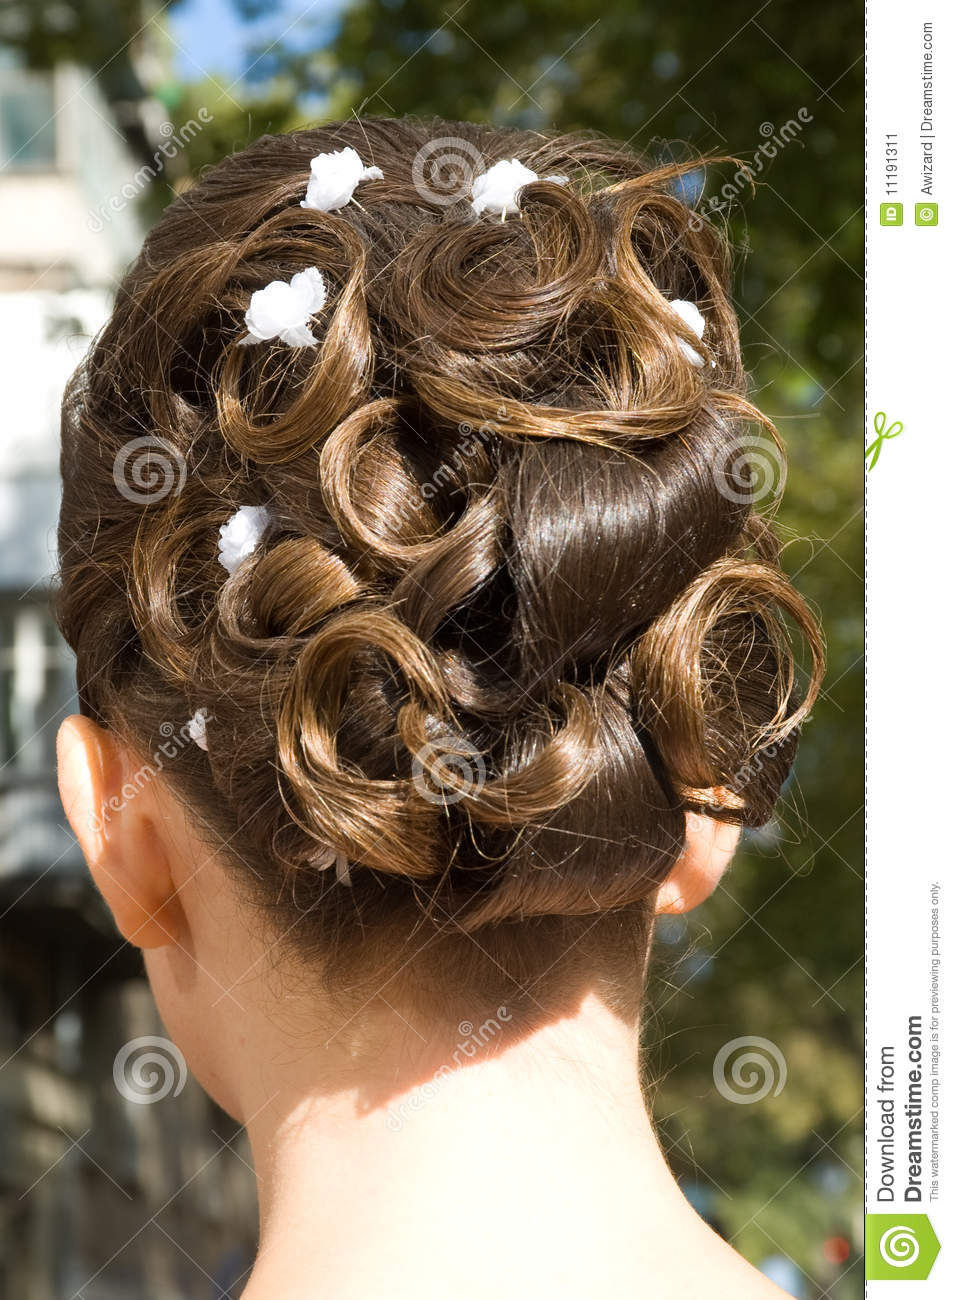 how to style hair for wedding wedding hair style stock image image 11191311 2953